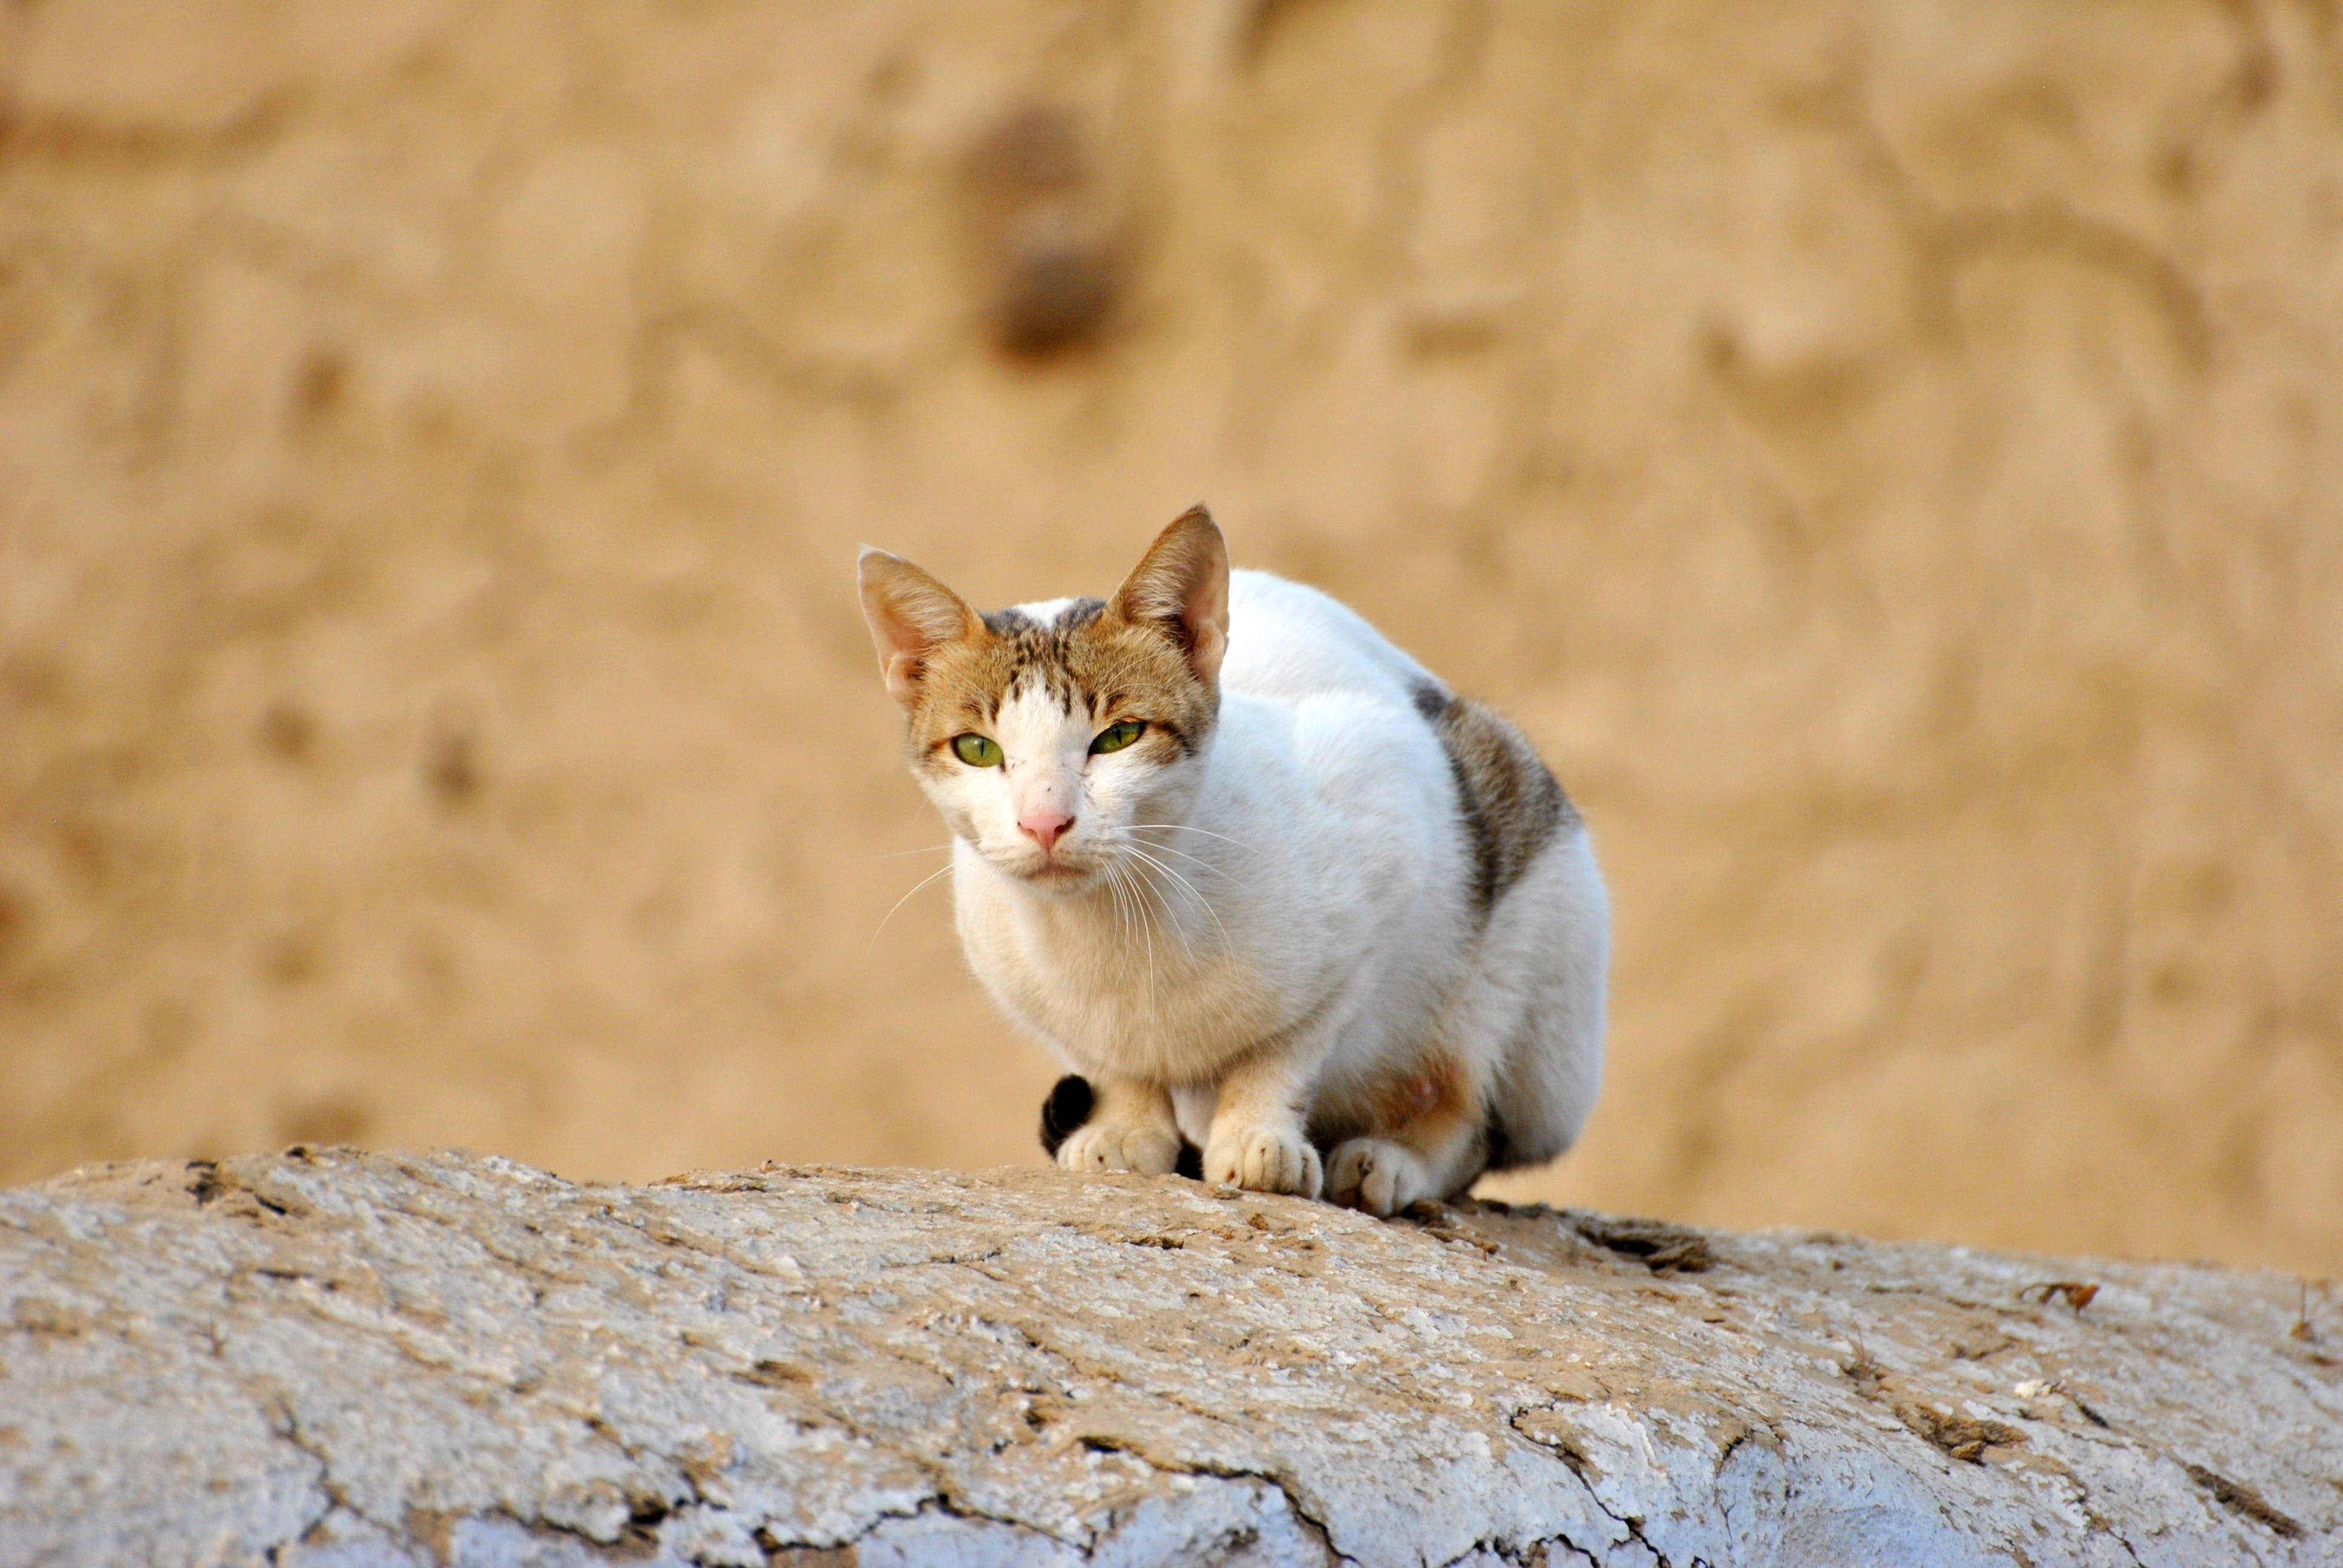 White Tabby Cat on Grey Rock